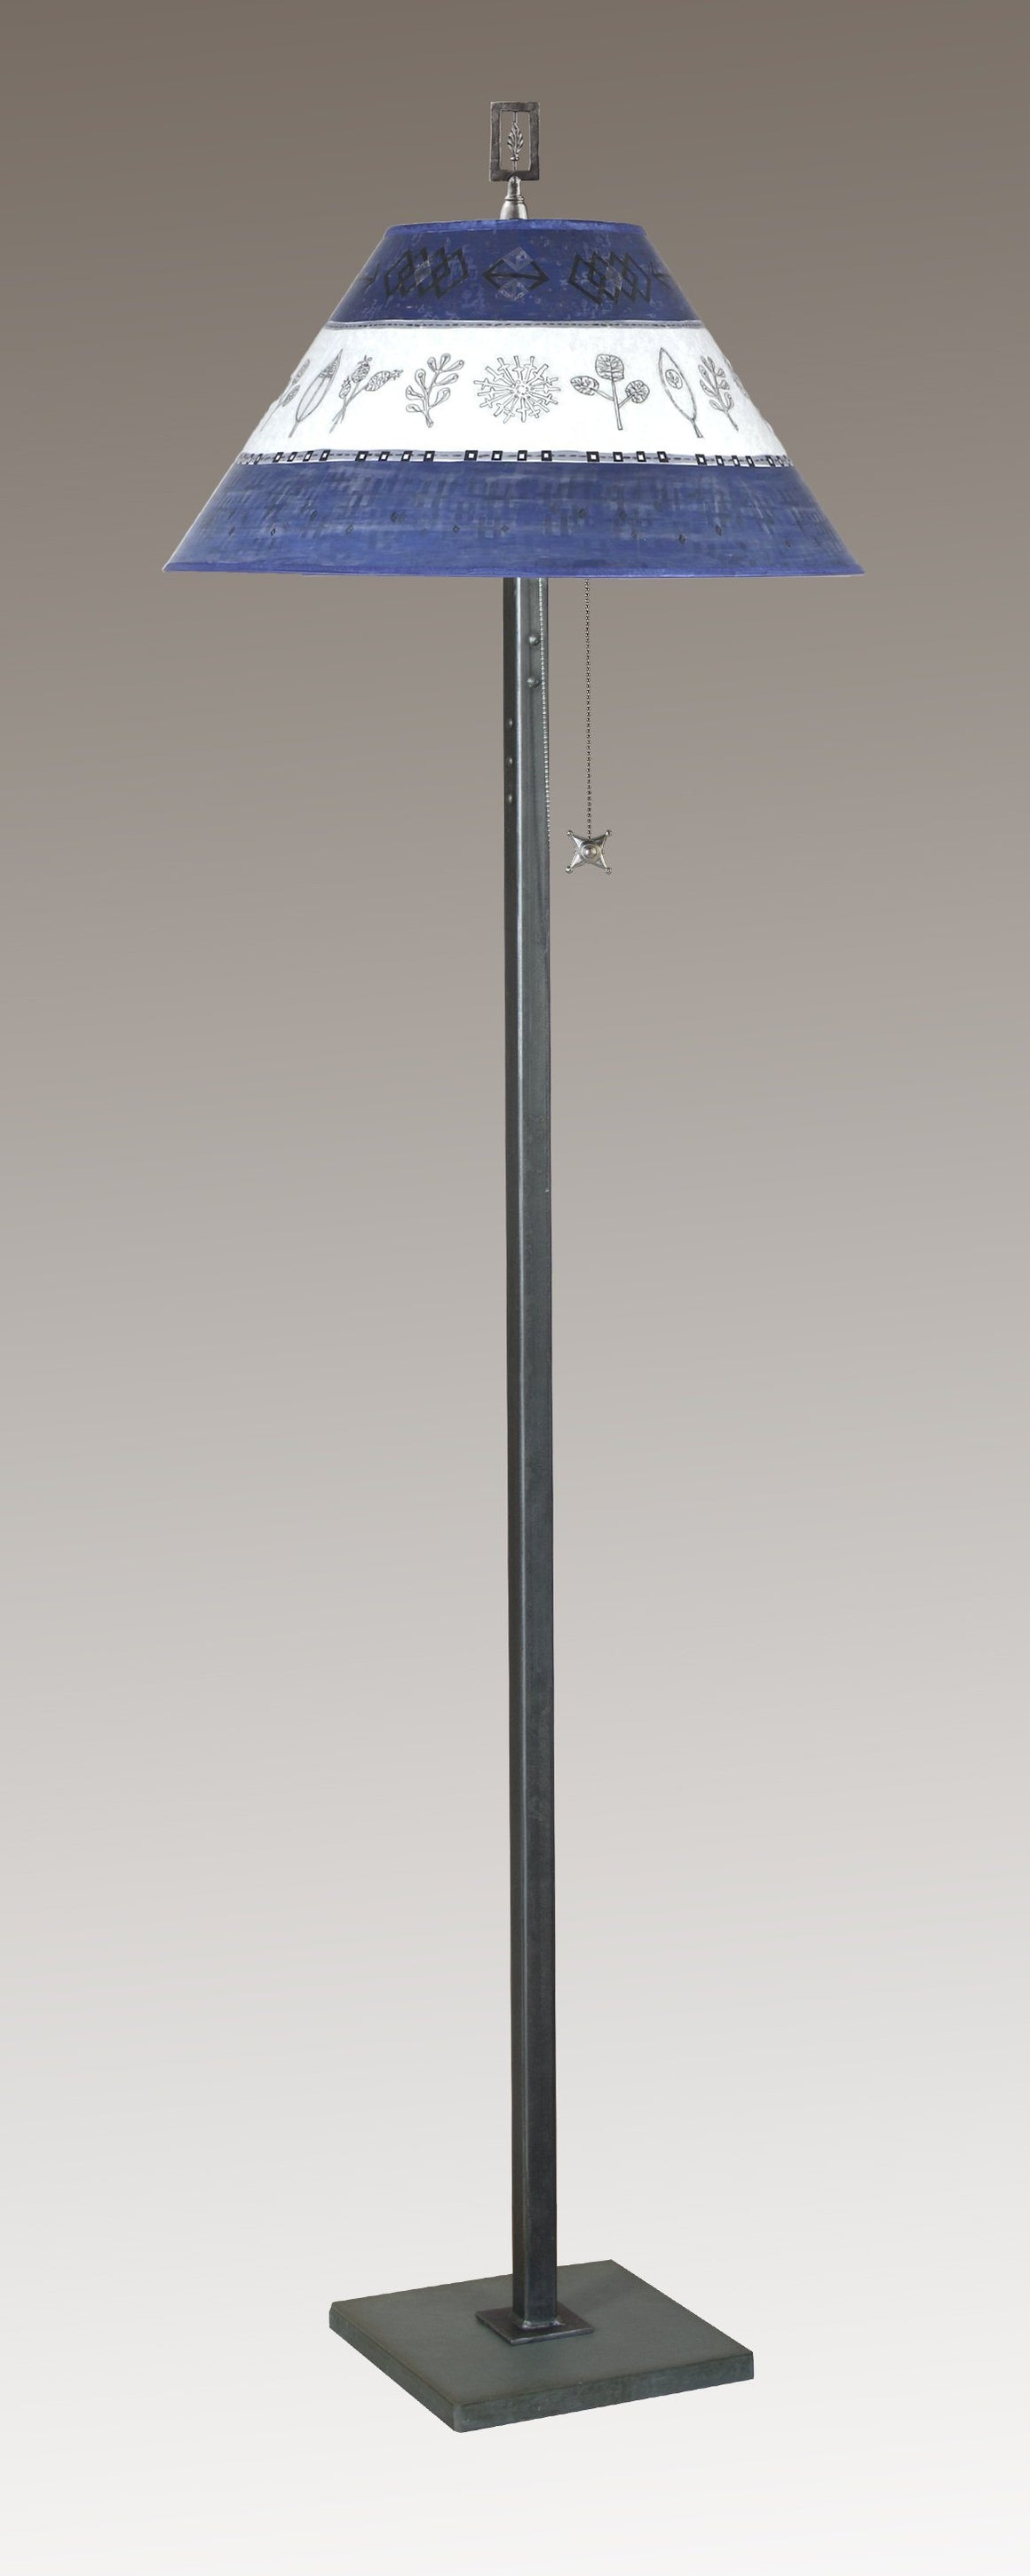 Steel Floor Lamp on Italian Marble with Large Conical Shade in Woven Sprig & Sapphire